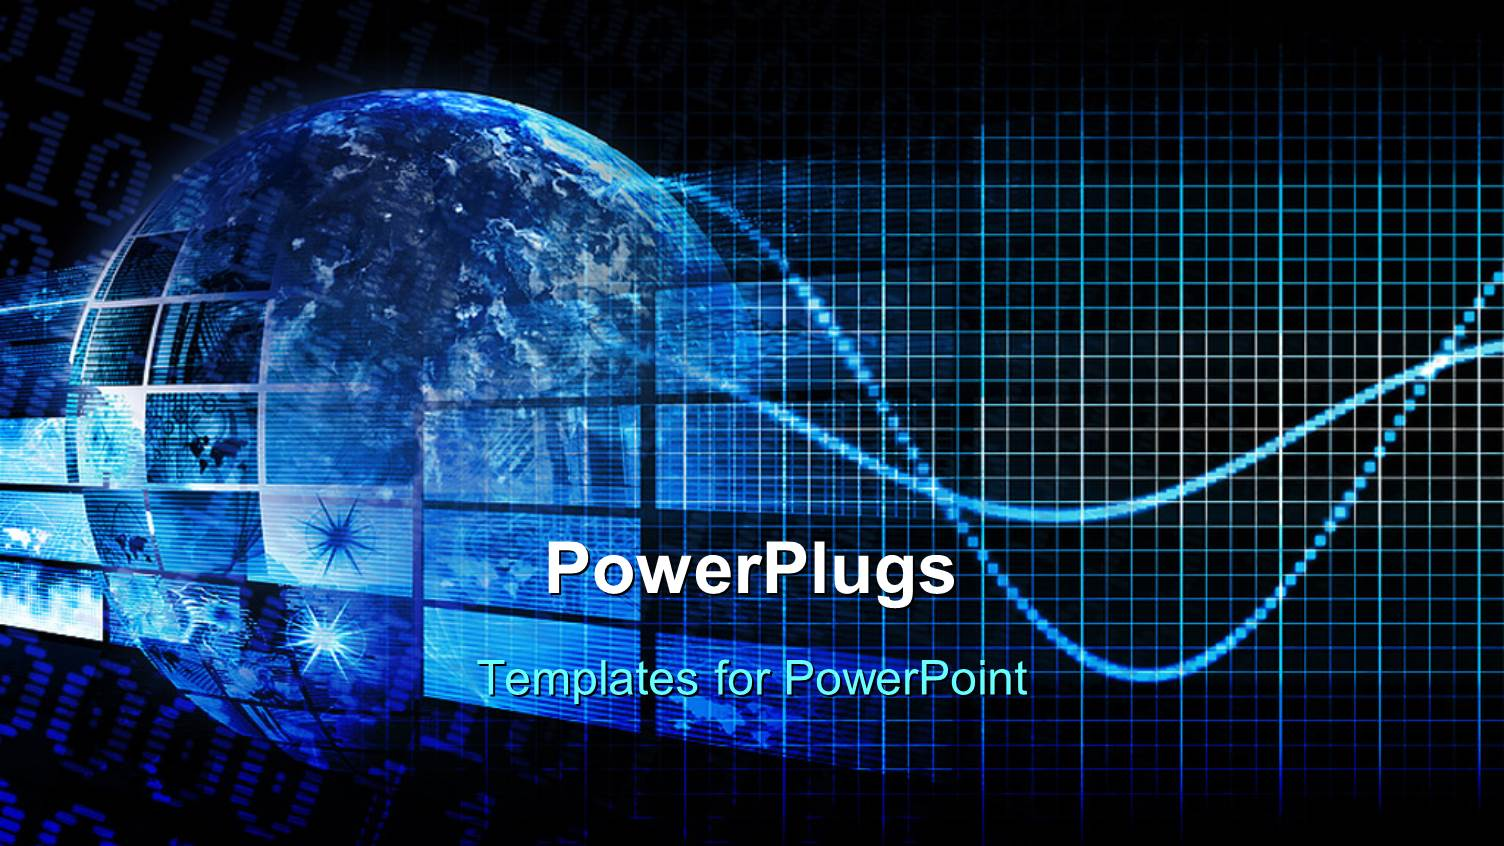 Technology PowerPoint Templates | CrystalGraphics